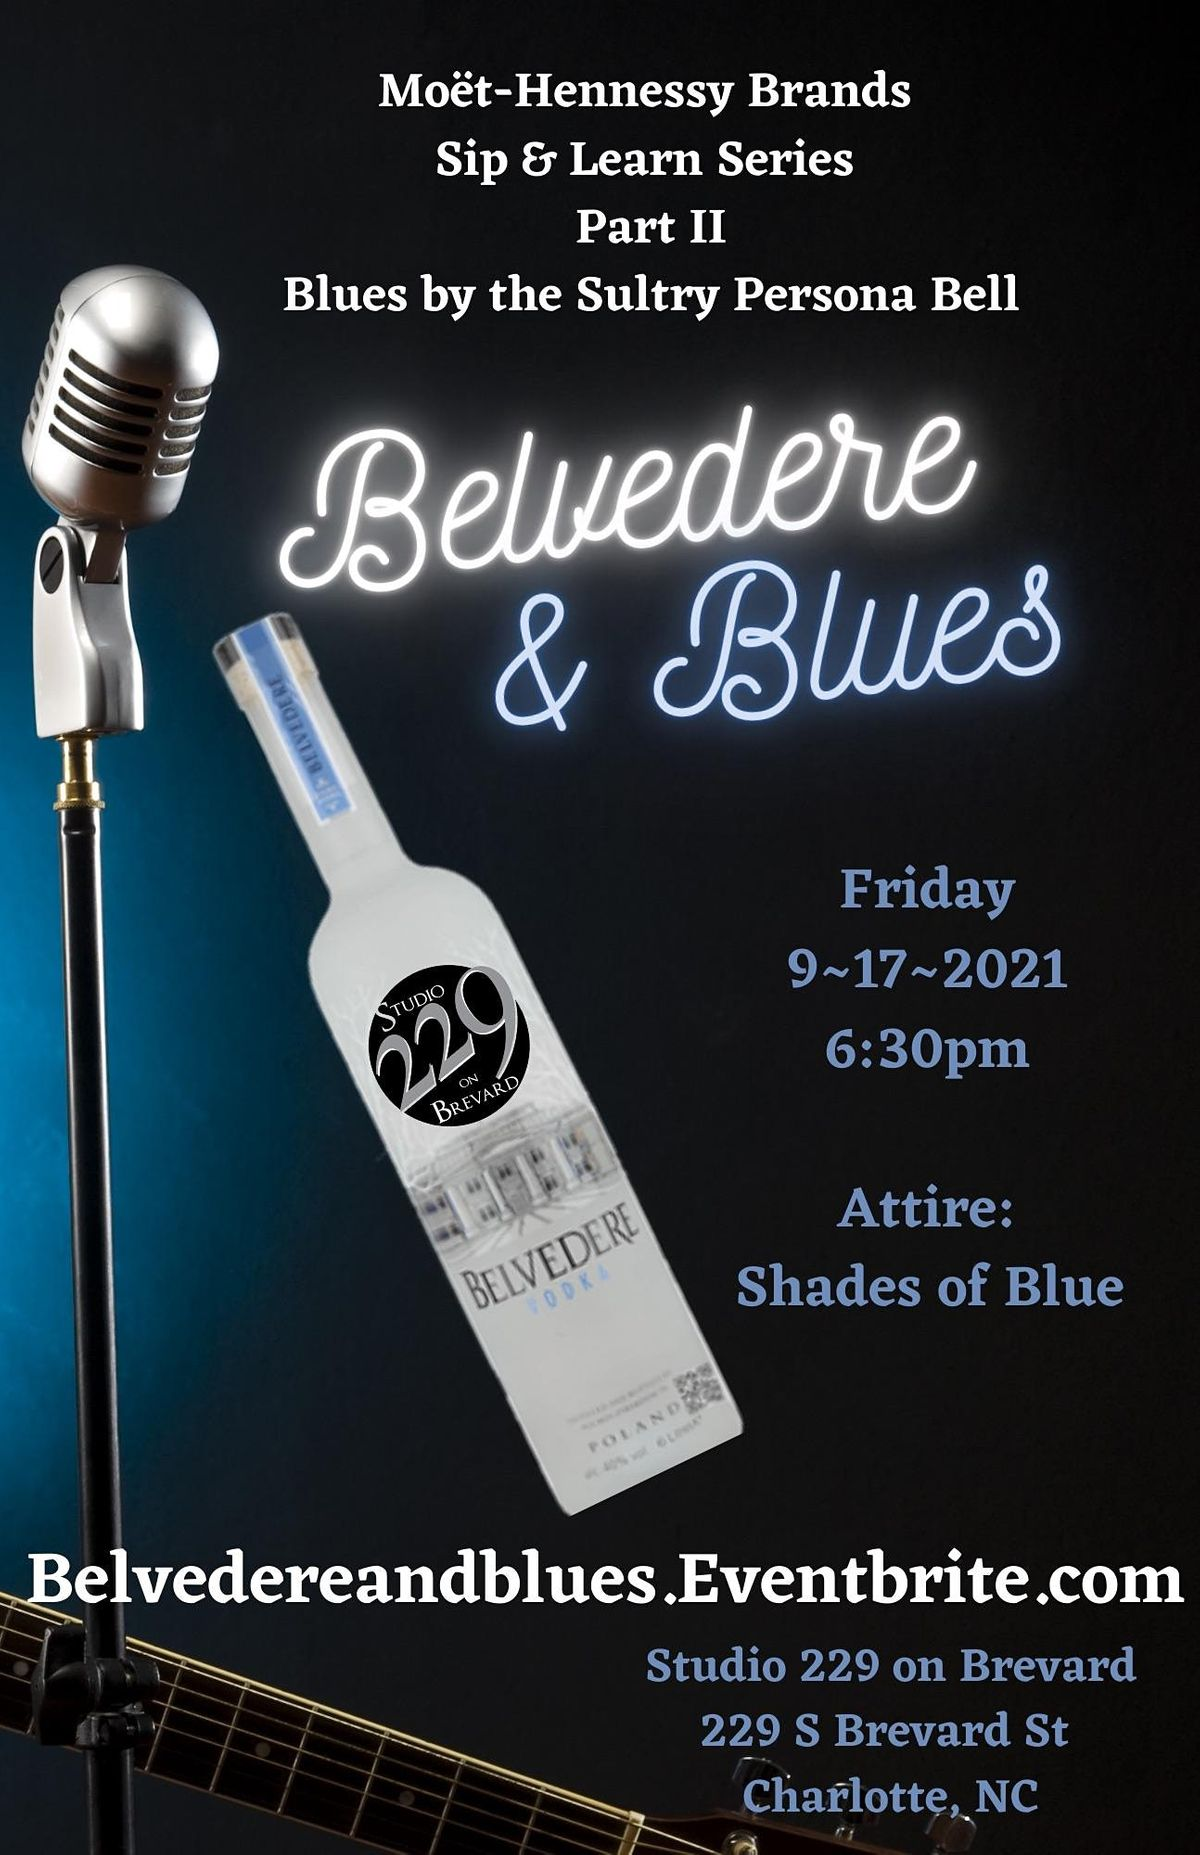 Belvedere & Blue - Wear Your Shades of Blue